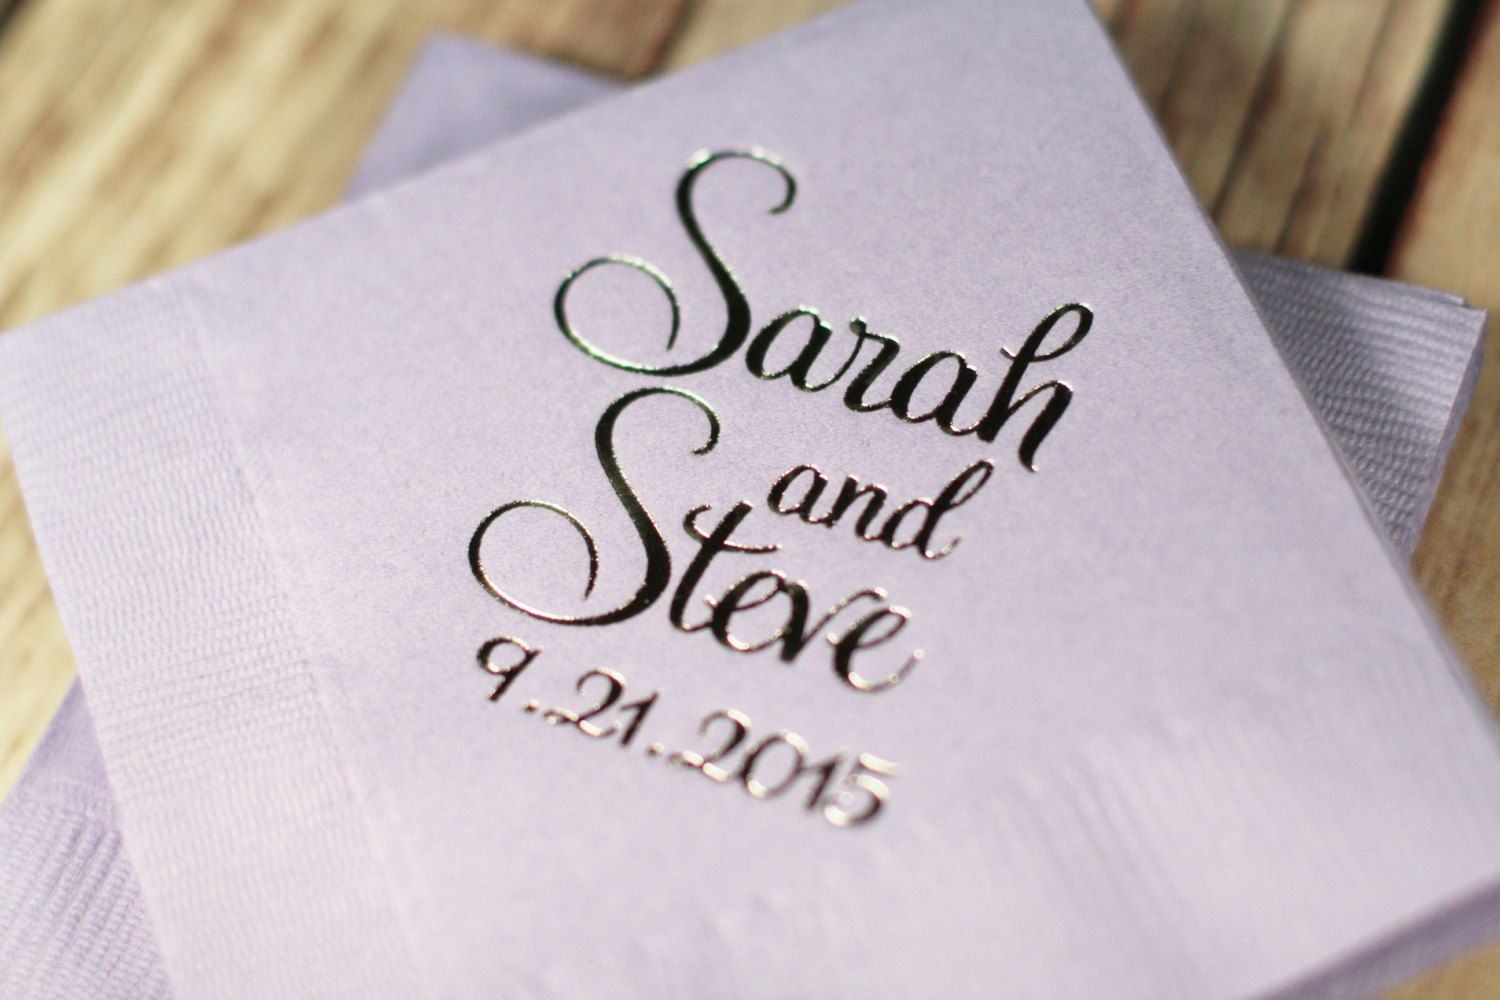 wedding napkins beverage napkins foil personalized napkins